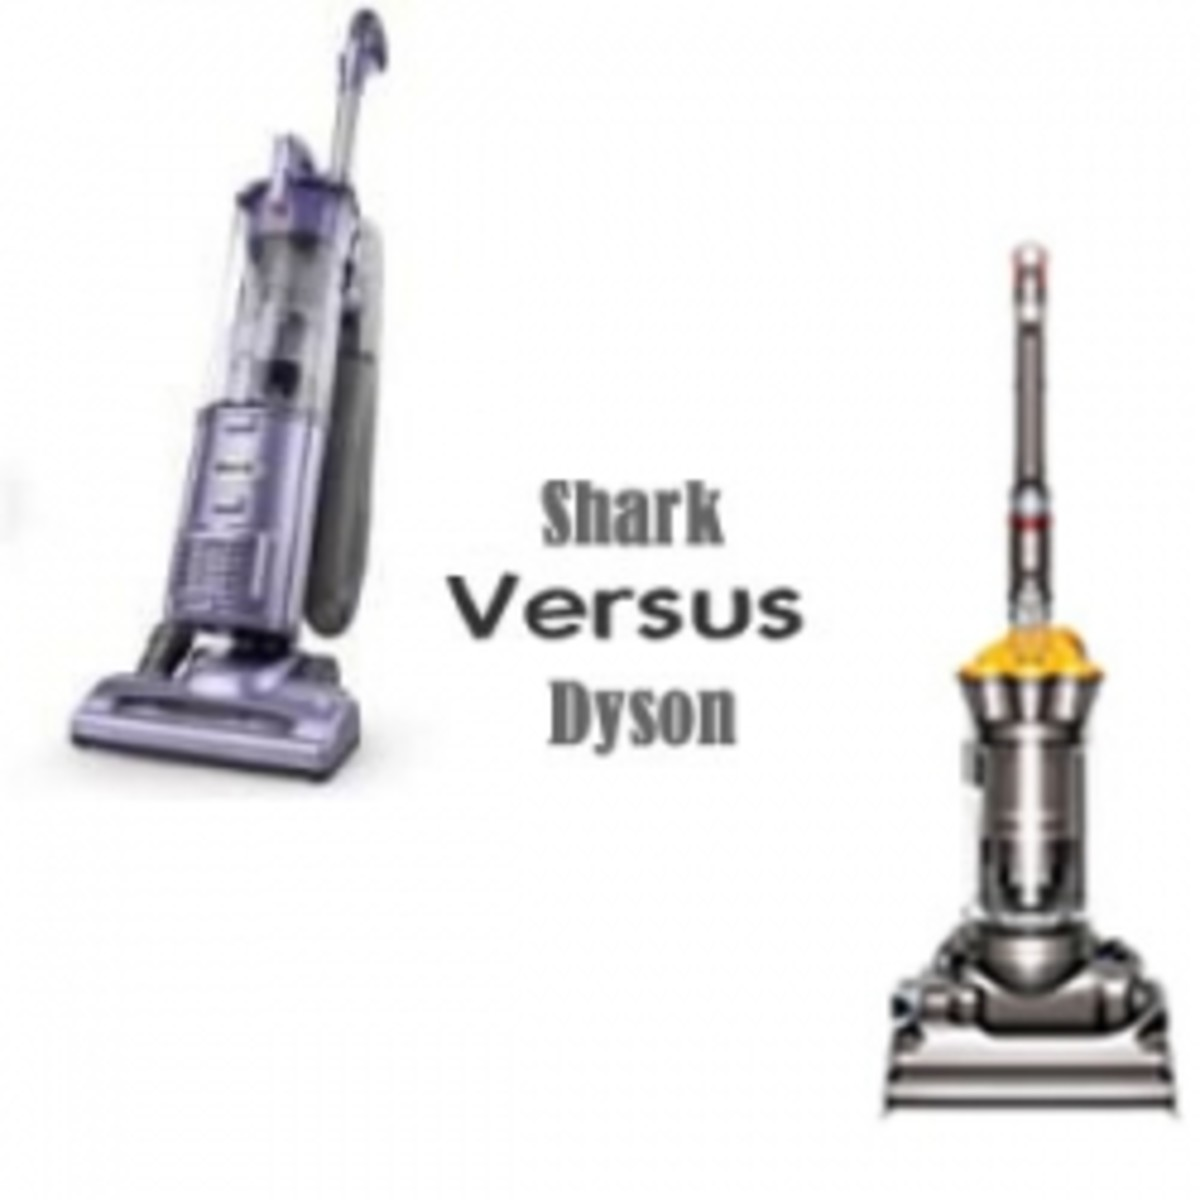 Comparing Shark vs Dyson Vacuum Cleaners - An Indepth Review